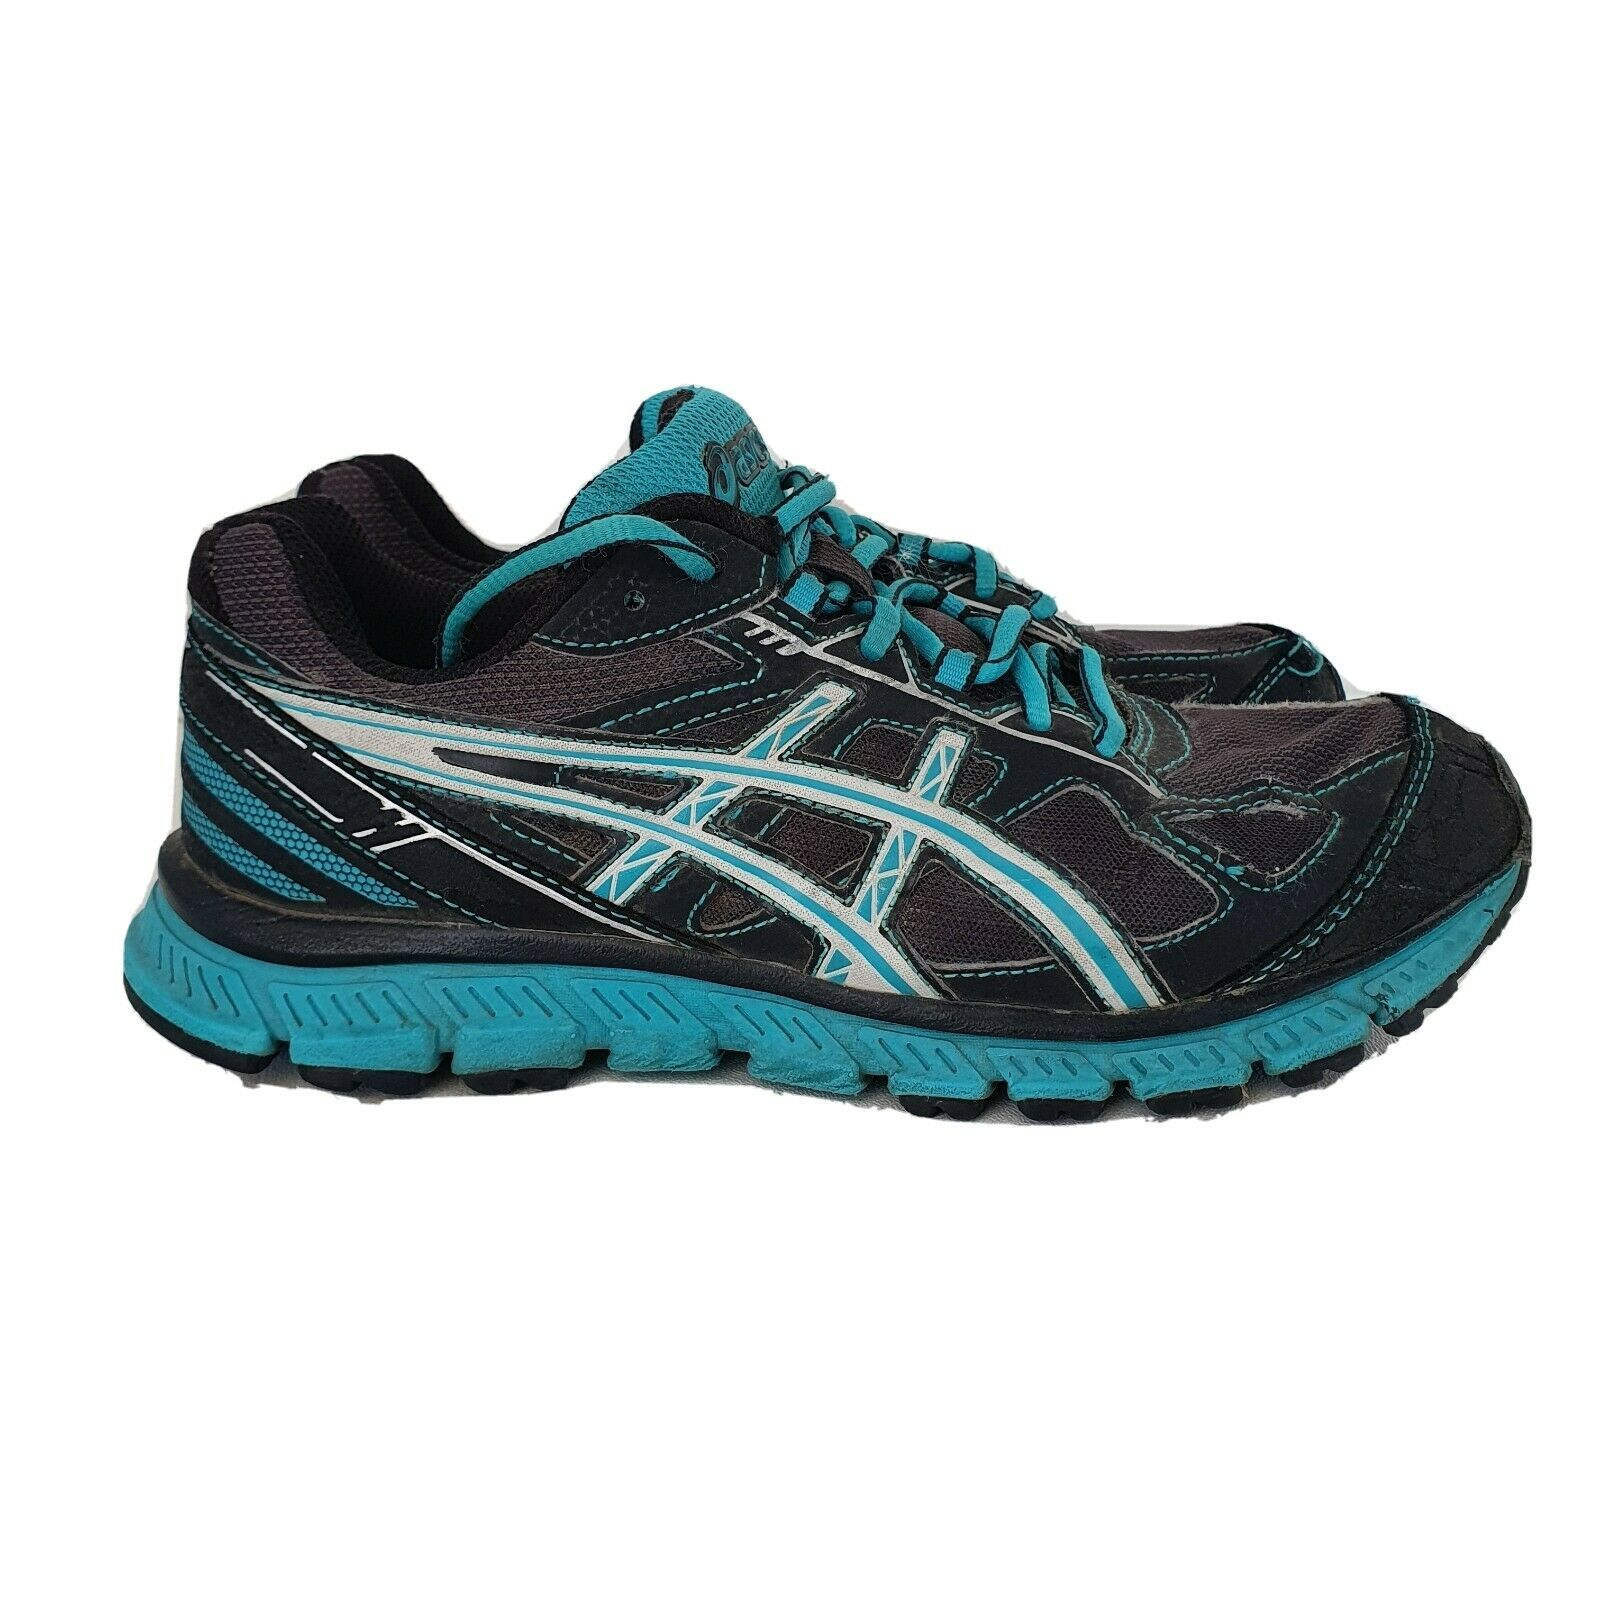 Primary image for Asics Gel-Scram 2 Women's US Size 7.5 Trail Running Athletic Shoes T3G7N